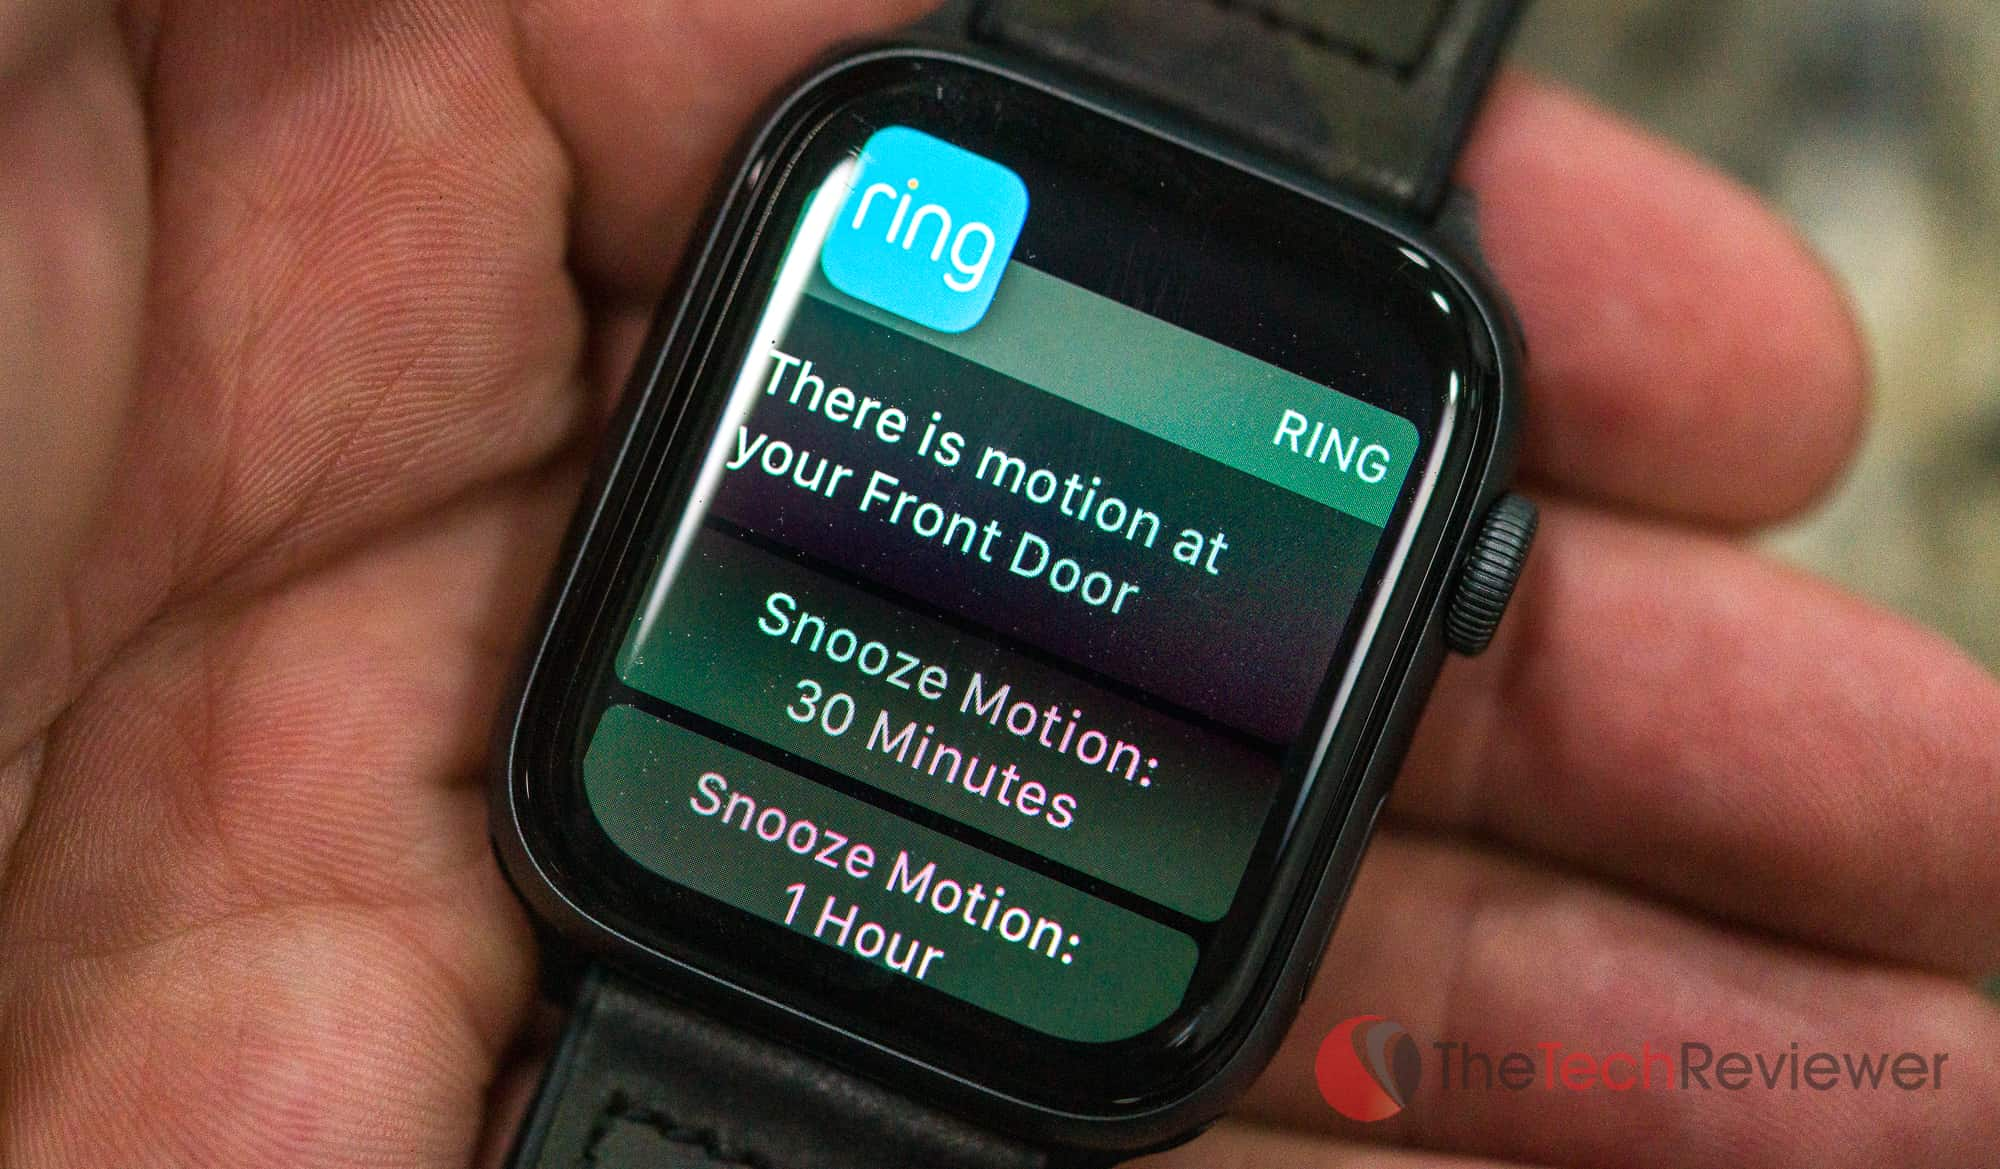 Apple Watch Ring Notification